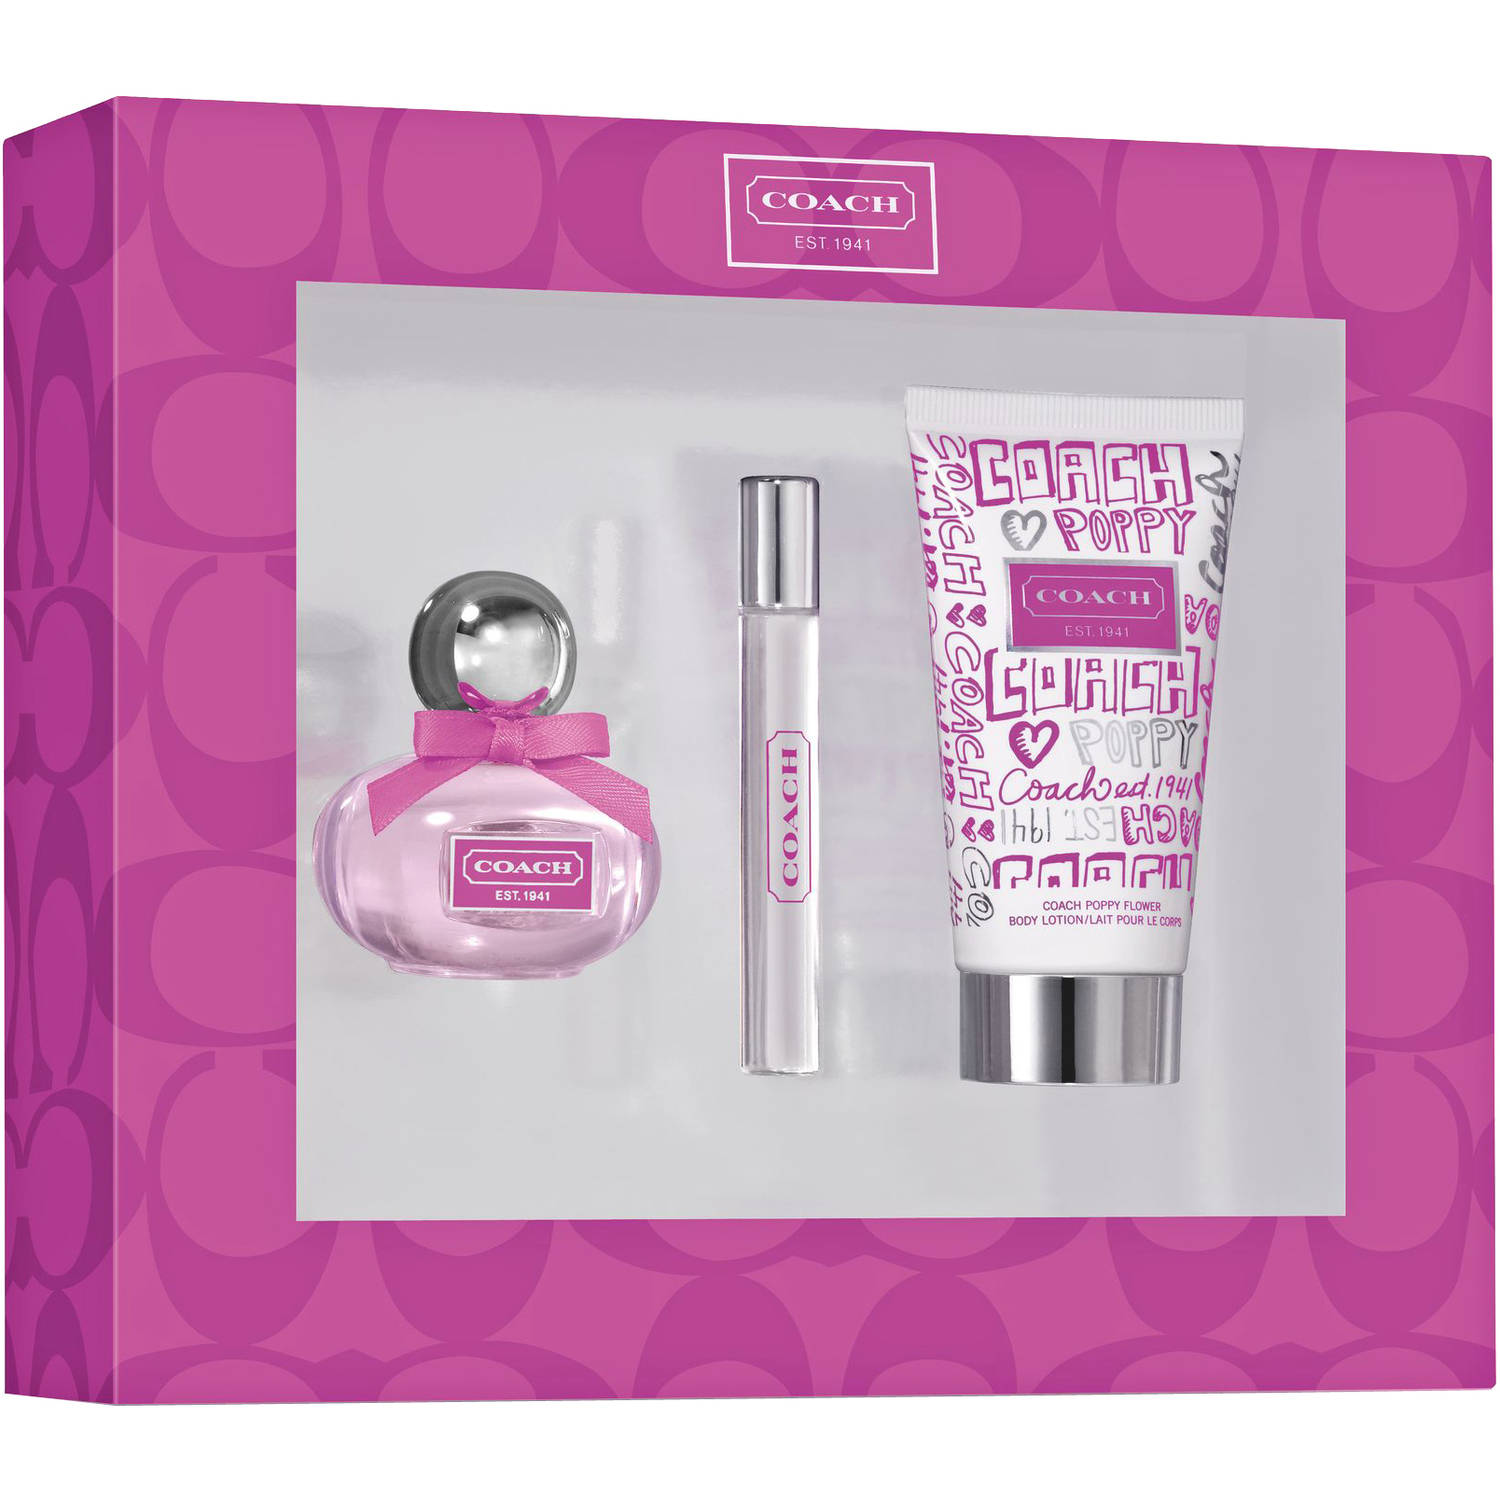 Coach Poppy Flower for Women Fragrance Gift Set, 3 pc